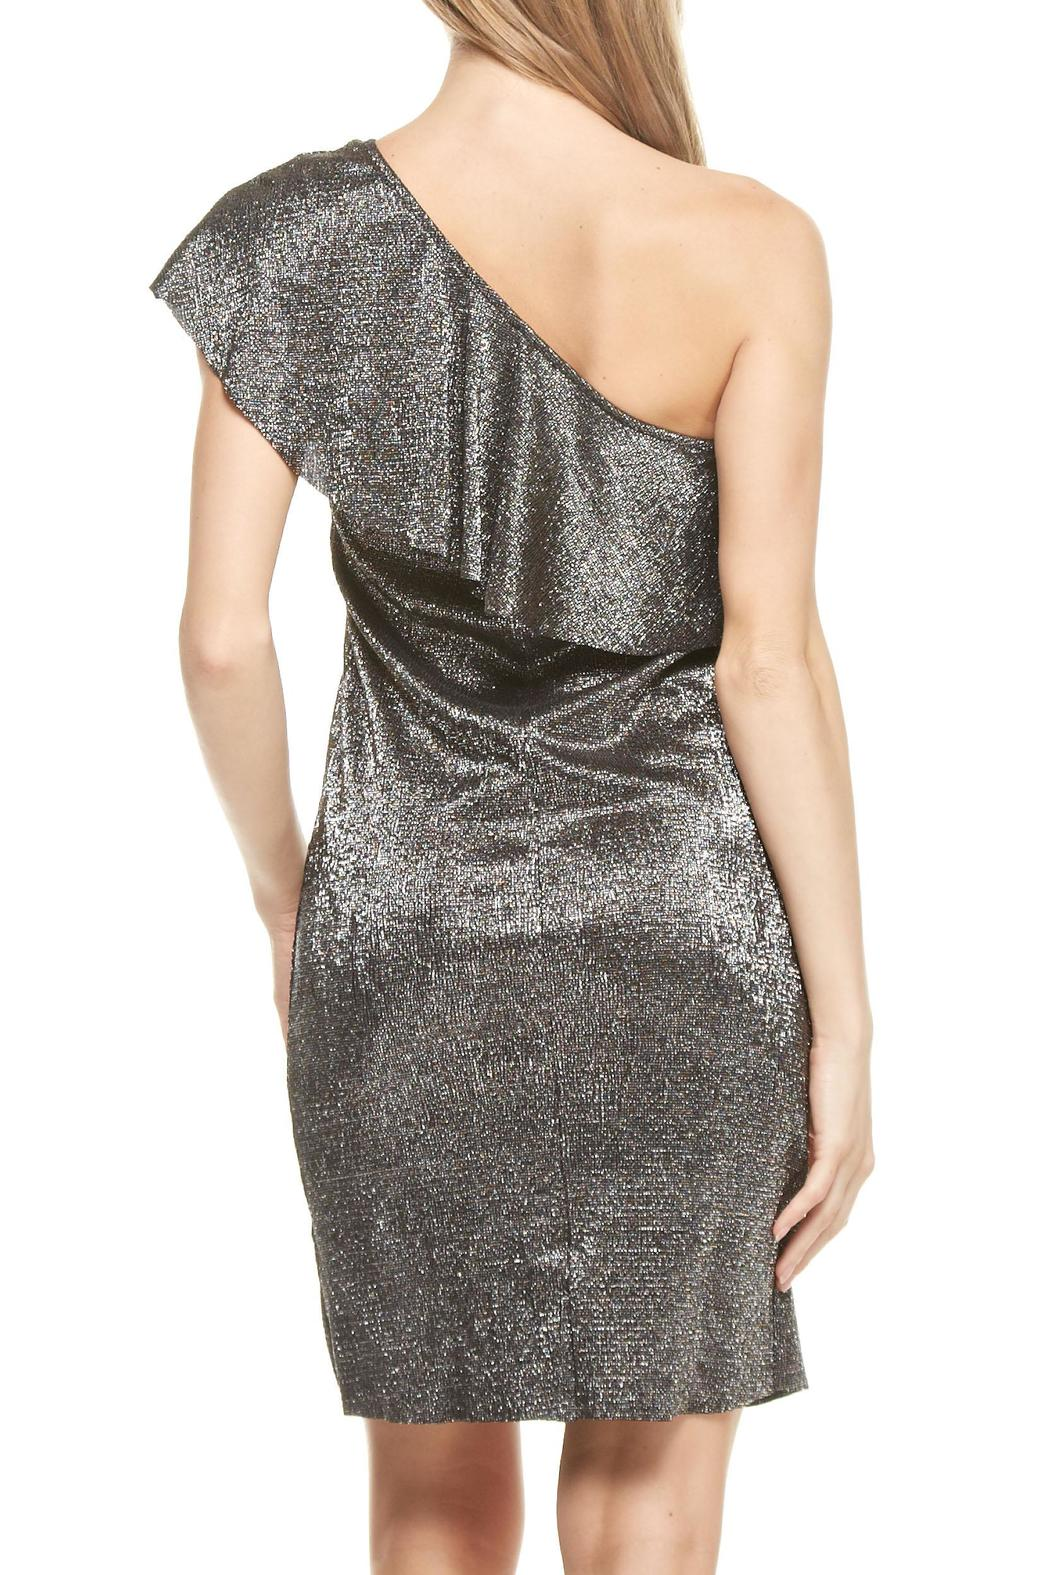 Everly One Shoulder Disco Dress - Side Cropped Image